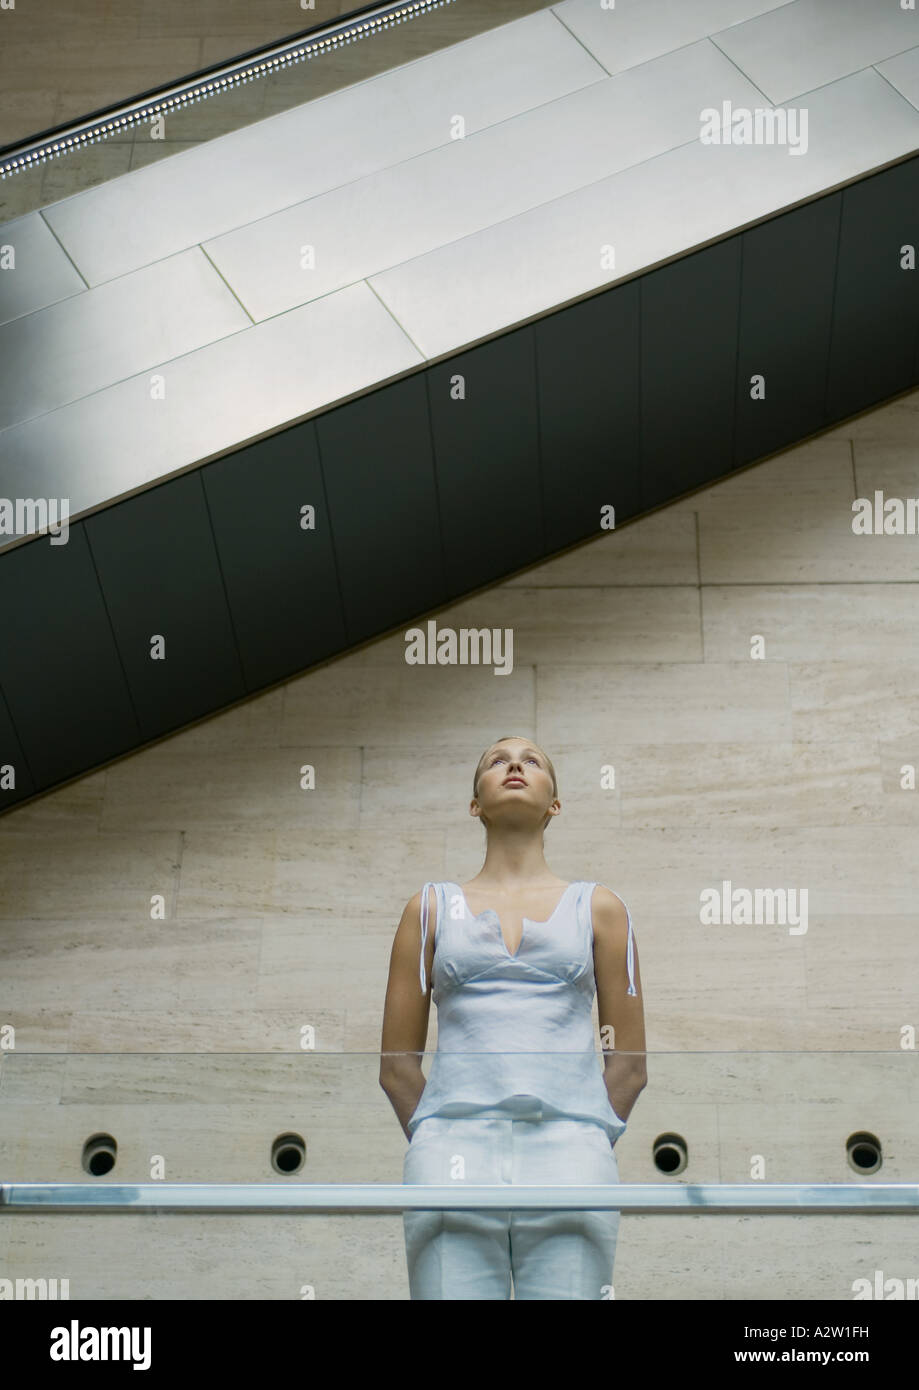 Woman standing under escalator, low angle view - Stock Image